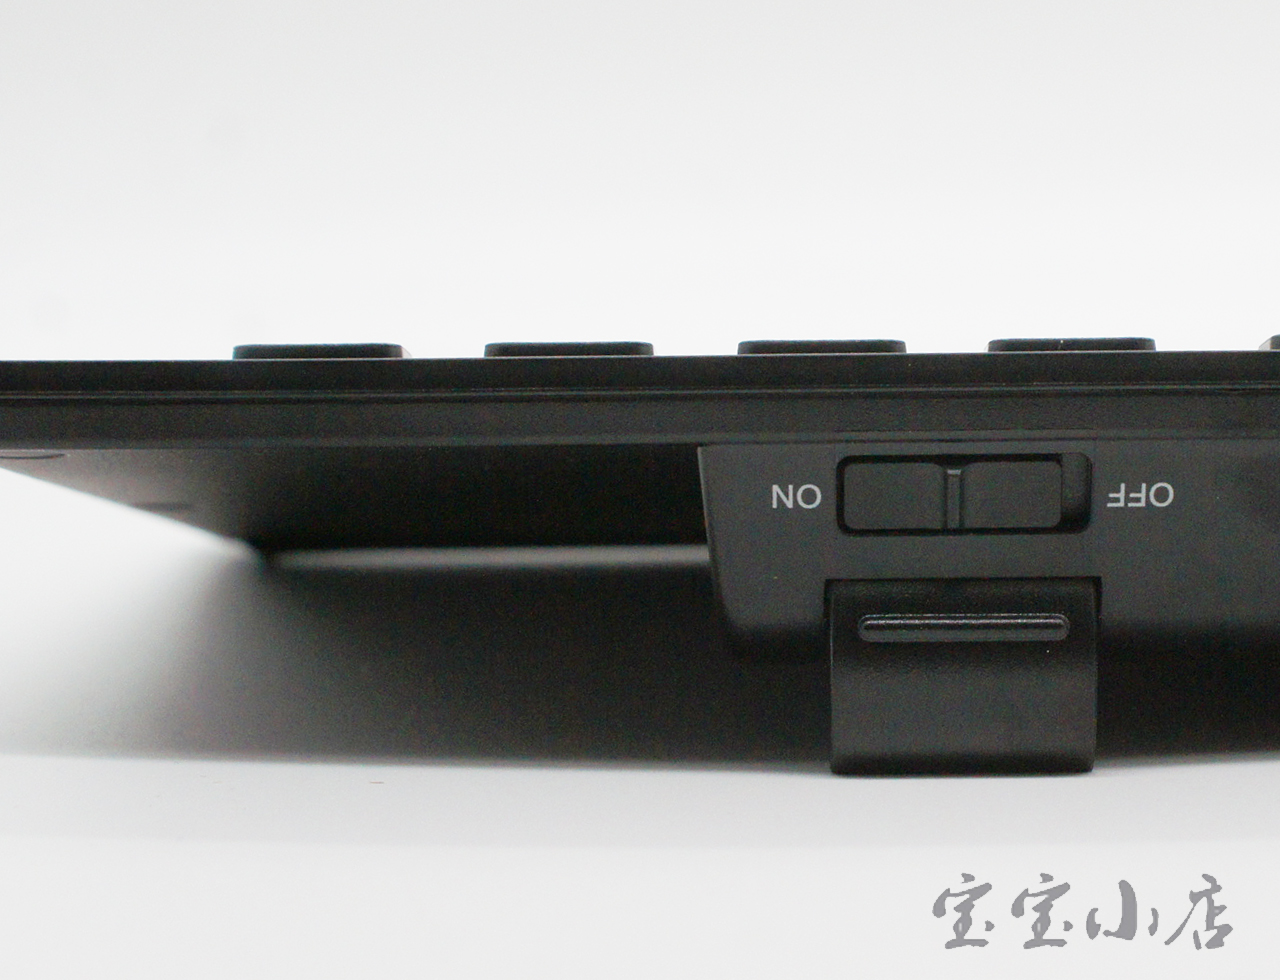 新到货29pcs SONY VGP-WKB15 Bluetooth wireless keyboard 无线蓝牙键盘 1-492-533-21